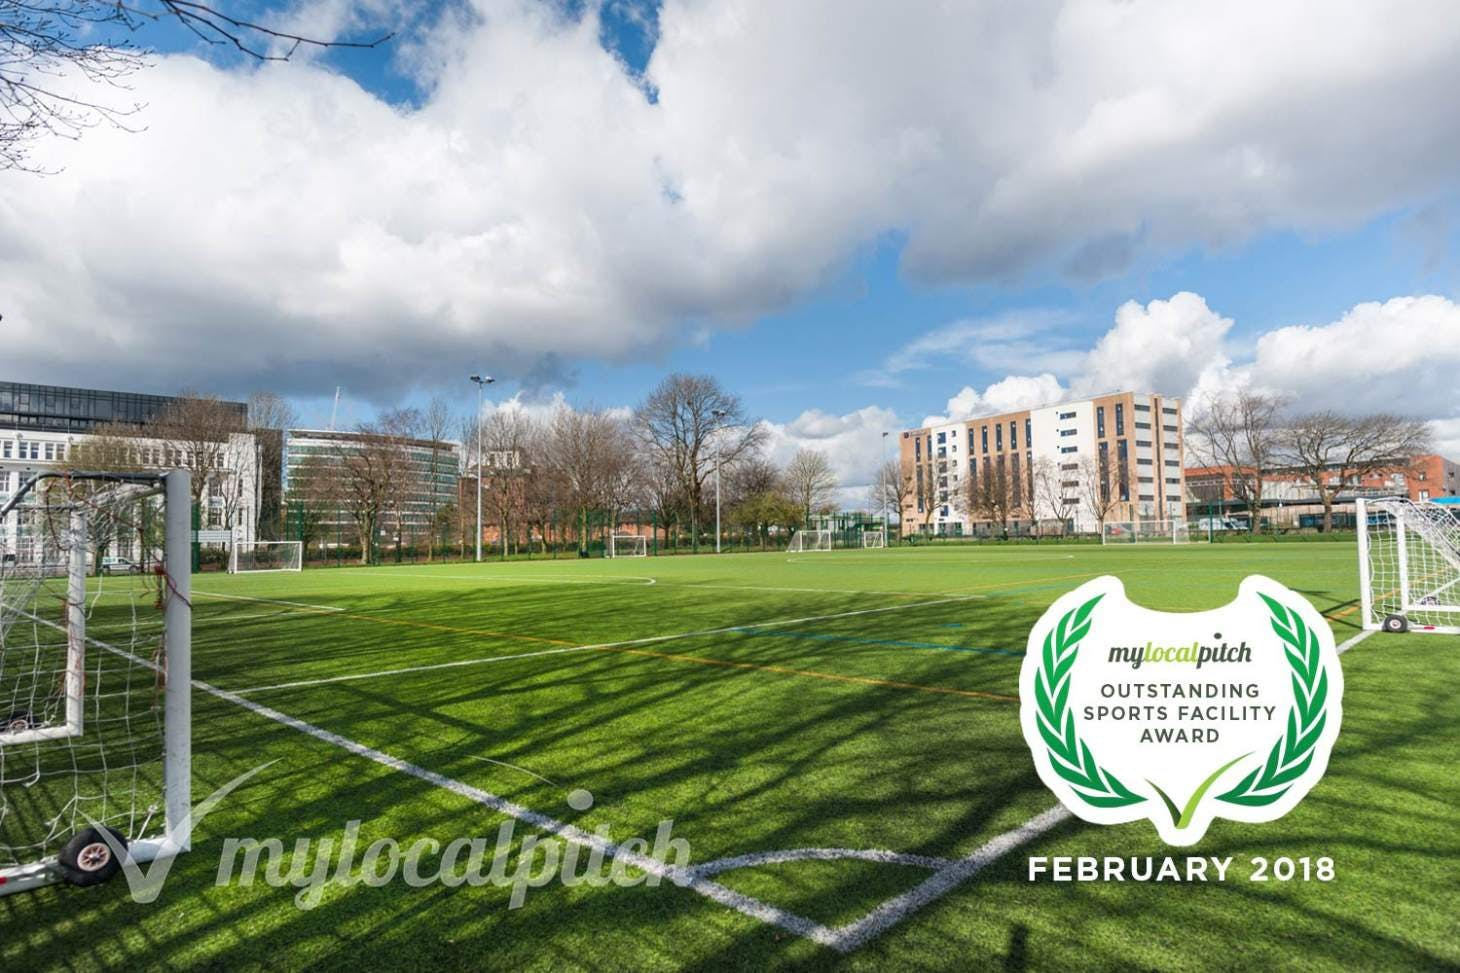 Ordsall Leisure Centre 5 a side | 3G Astroturf football pitch